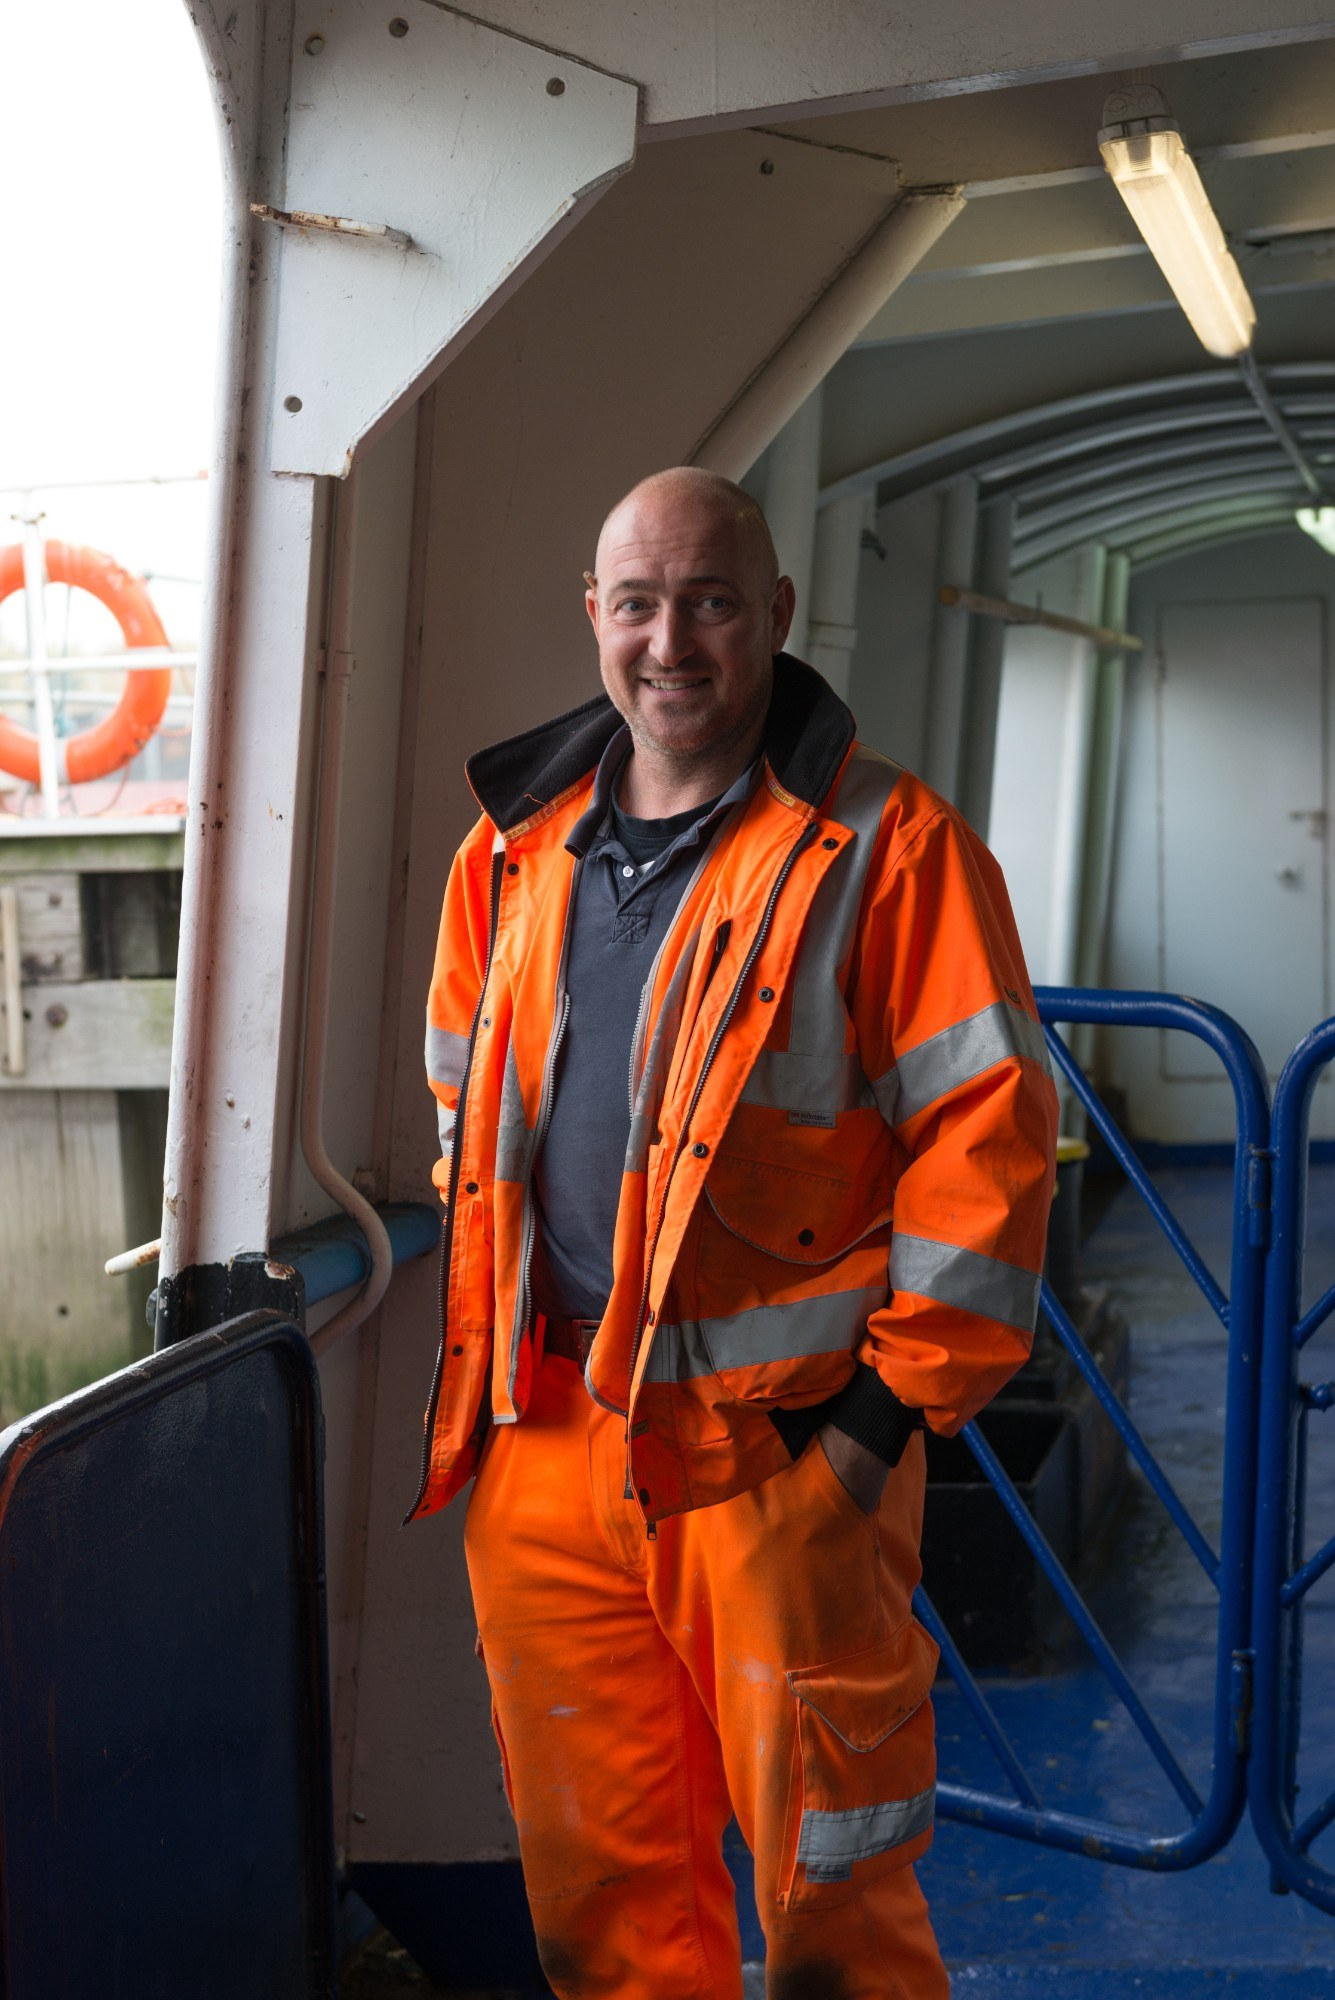 Portrait of man wearing high vis, on the ferry